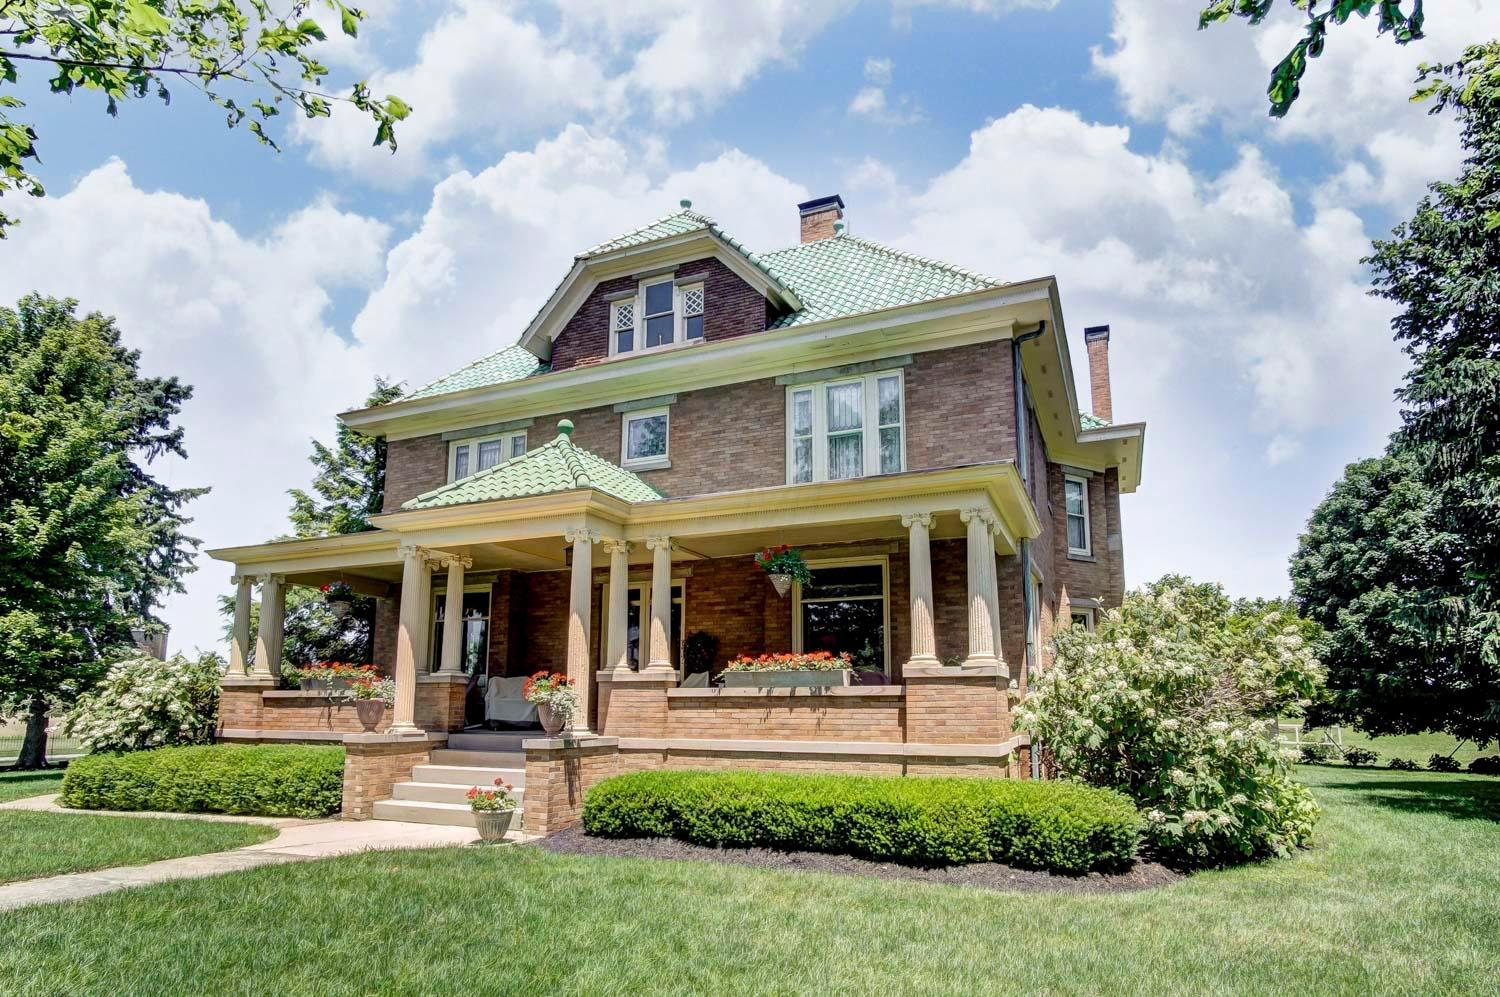 19920 Commercial Point Road, Circleville, Ohio 43113, 4 Bedrooms Bedrooms, ,3 BathroomsBathrooms,Residential,For Sale,Commercial Point,218024876